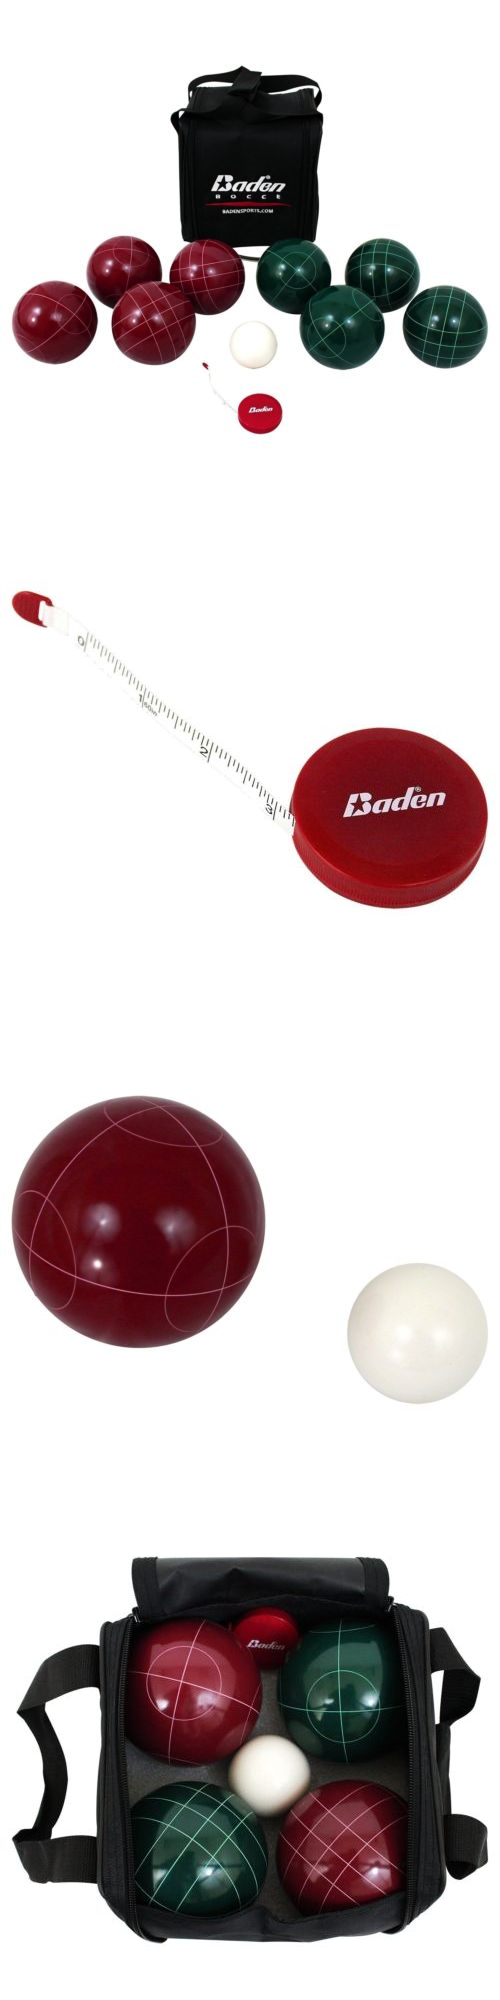 Bocce Ball 79788: Baden Champions Series Bocce Ball Set BUY IT NOW ONLY: $86.06